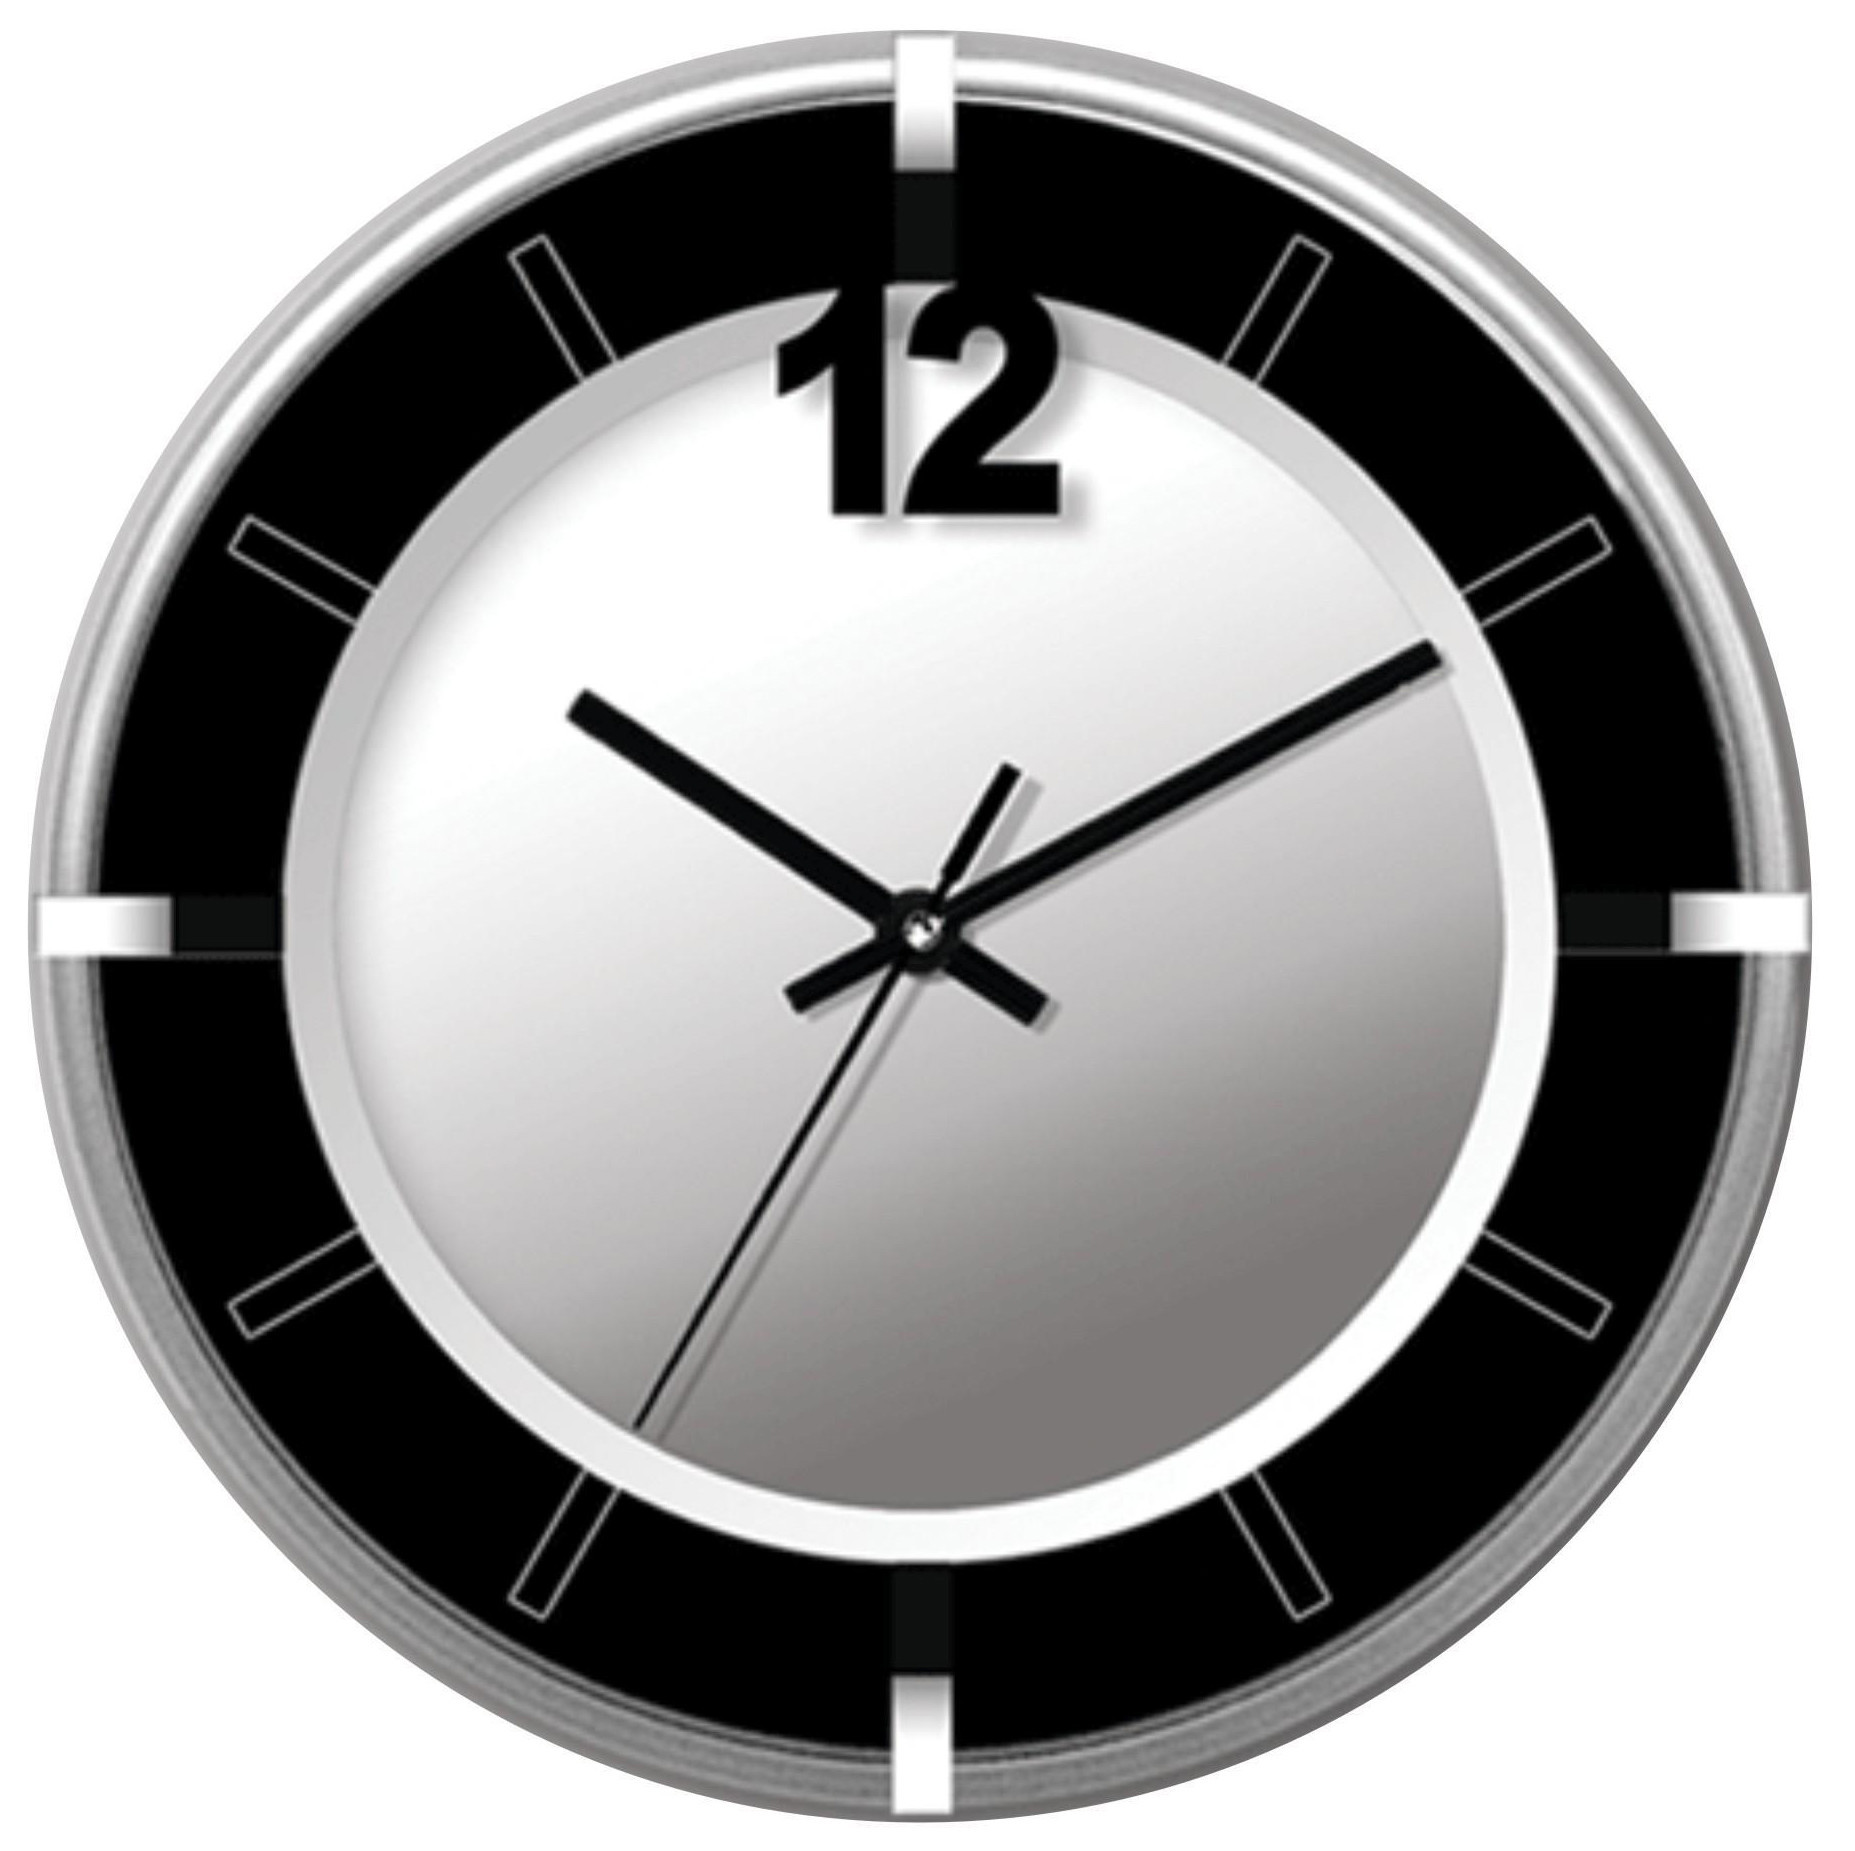 New Wall Clock In Silver And Black Ebay